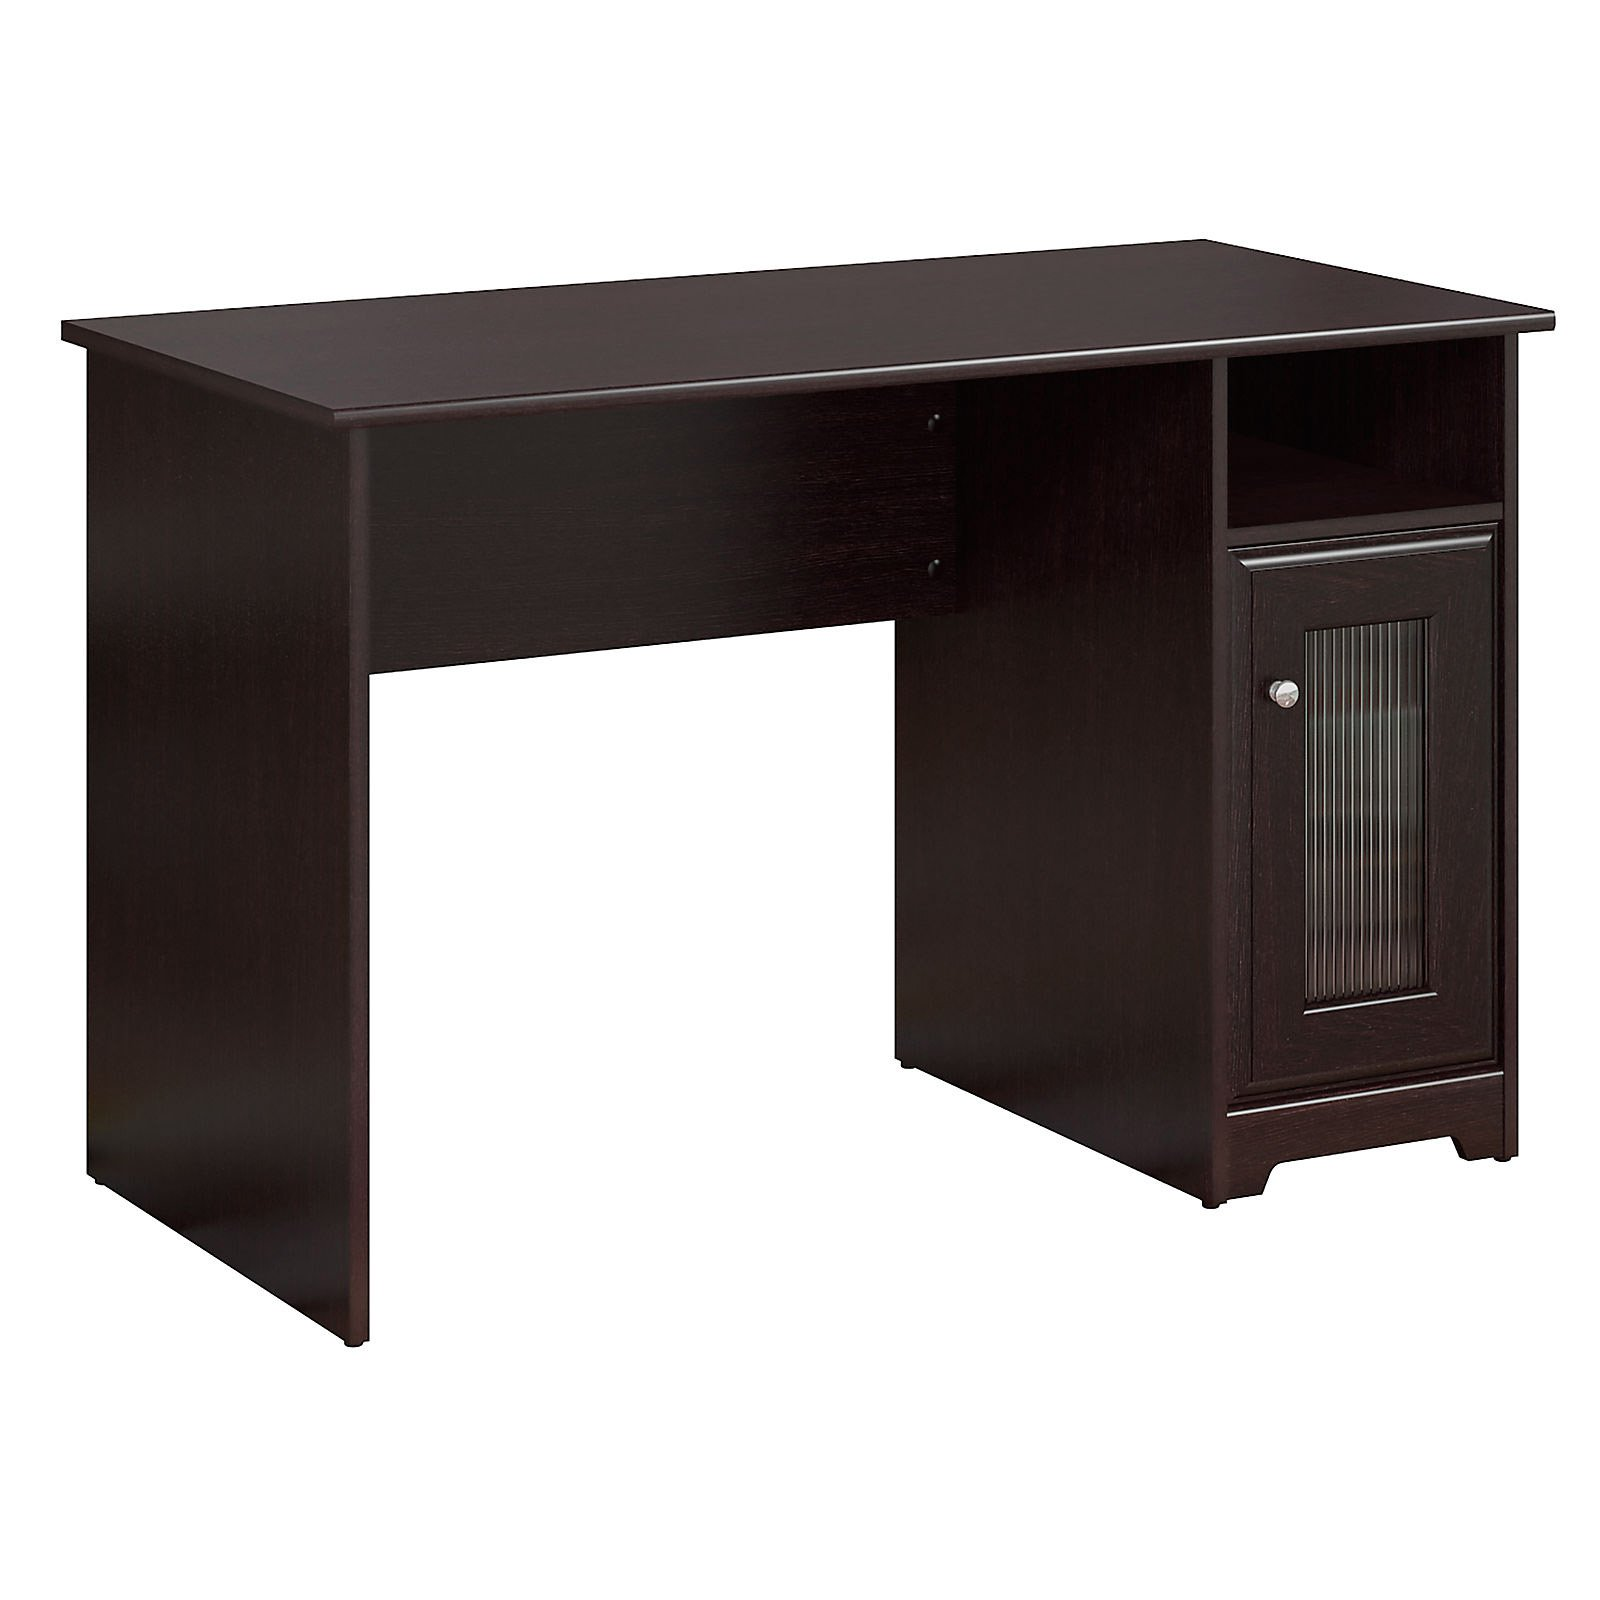 Great Bush Furniture Cabot Collection 48W Single Pedestal Desk, Espresso Oak